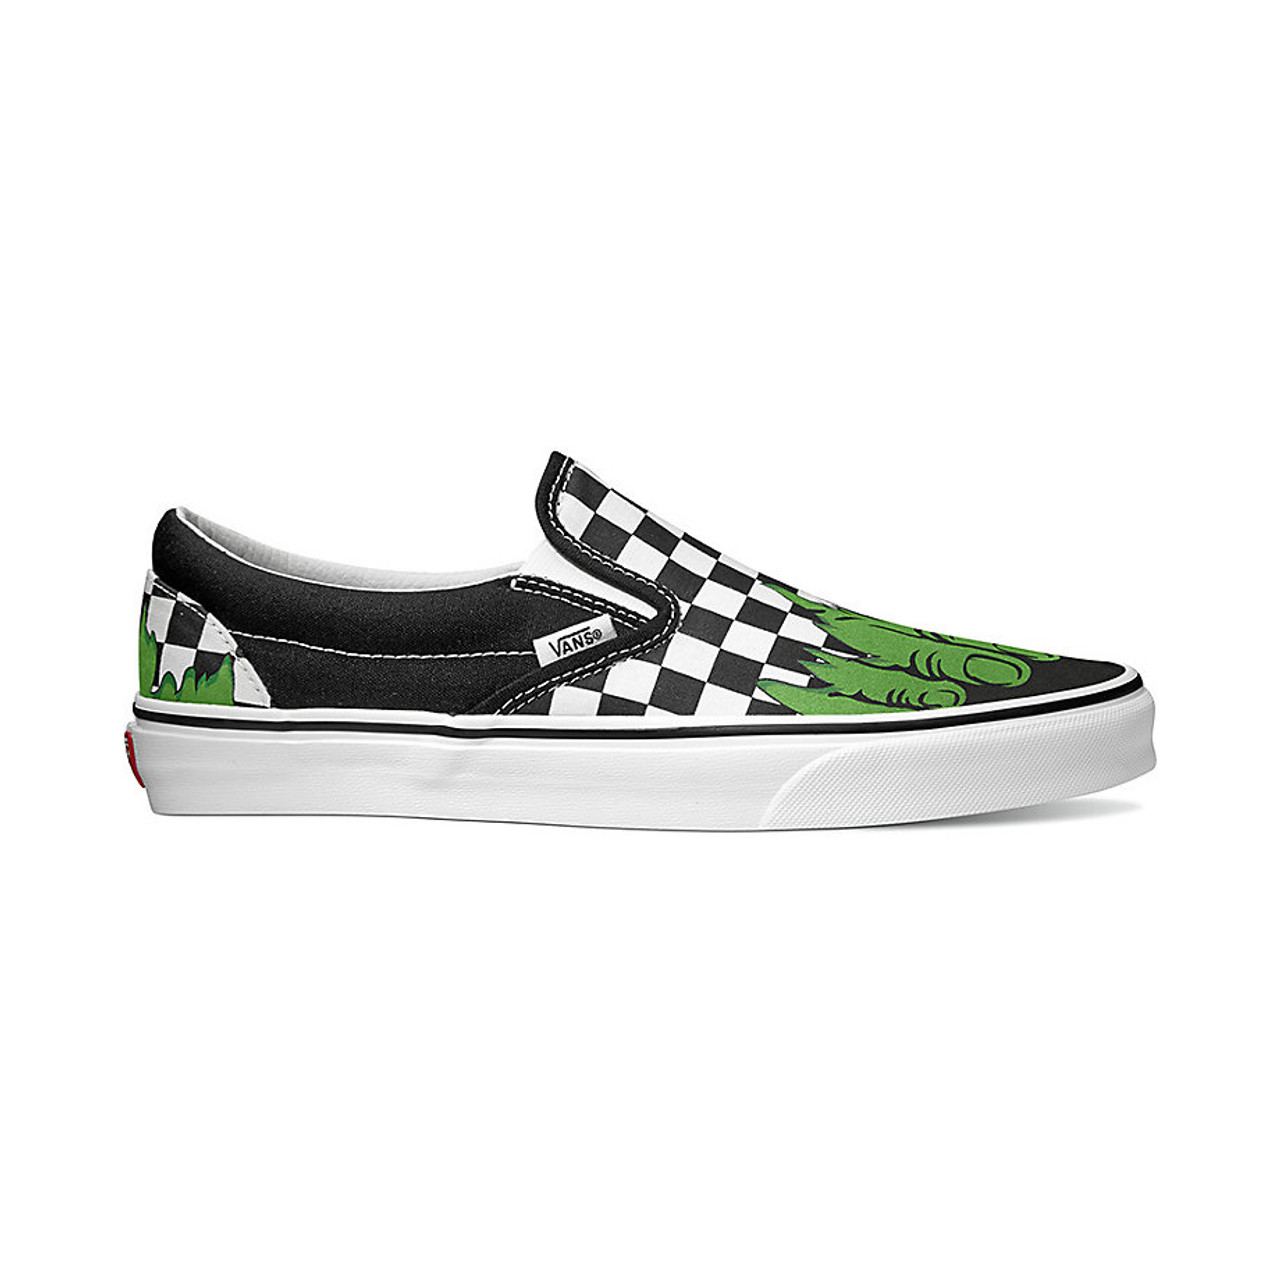 4dc4d97b2dbf Vans Shoes - Classic Slip-On - Marvel Hulk Checkerboard - Surf and Dirt